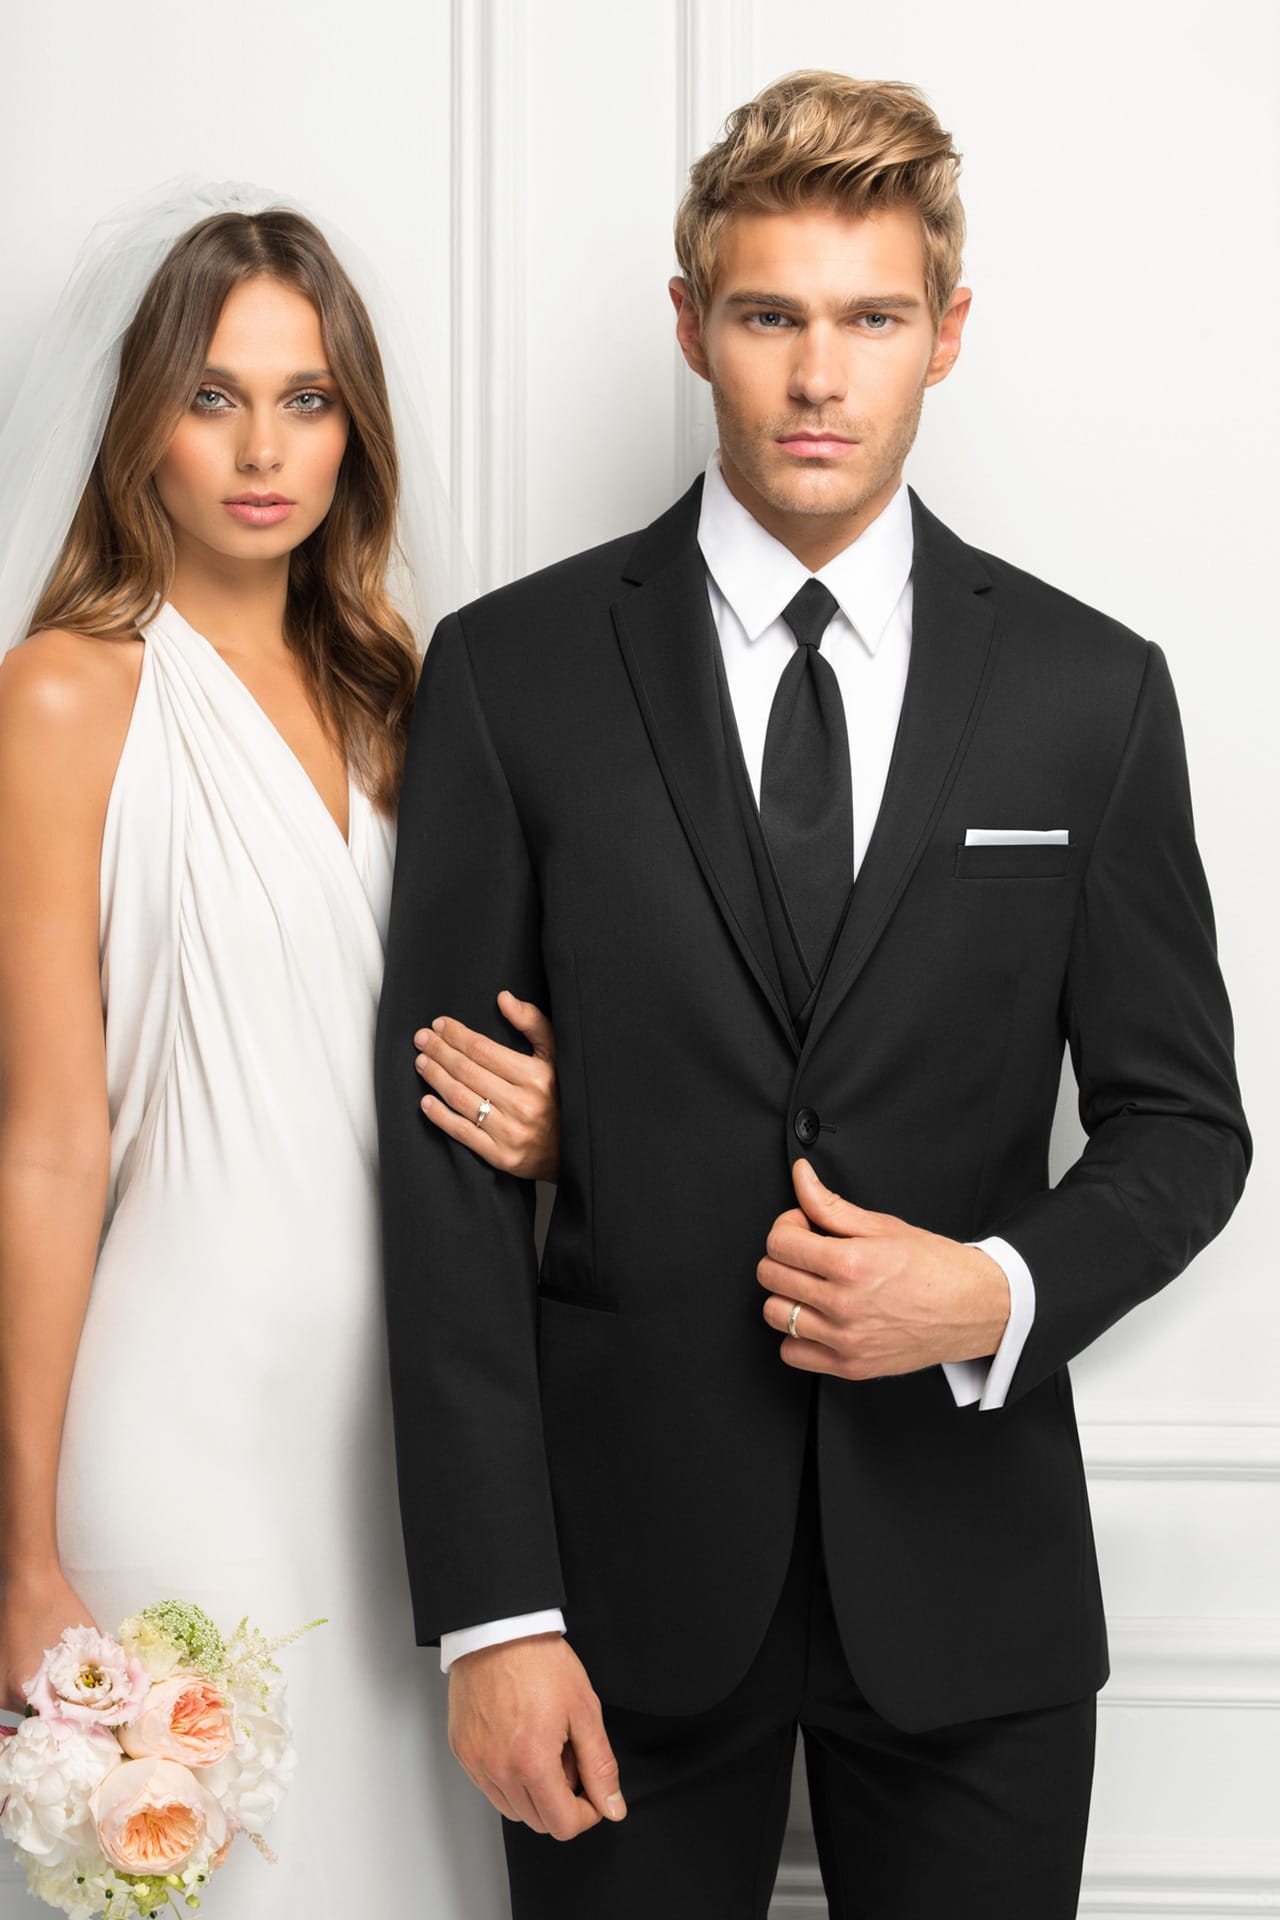 Michael Kors Ultra Slim Sterling Wedding Suit Ultra Slim